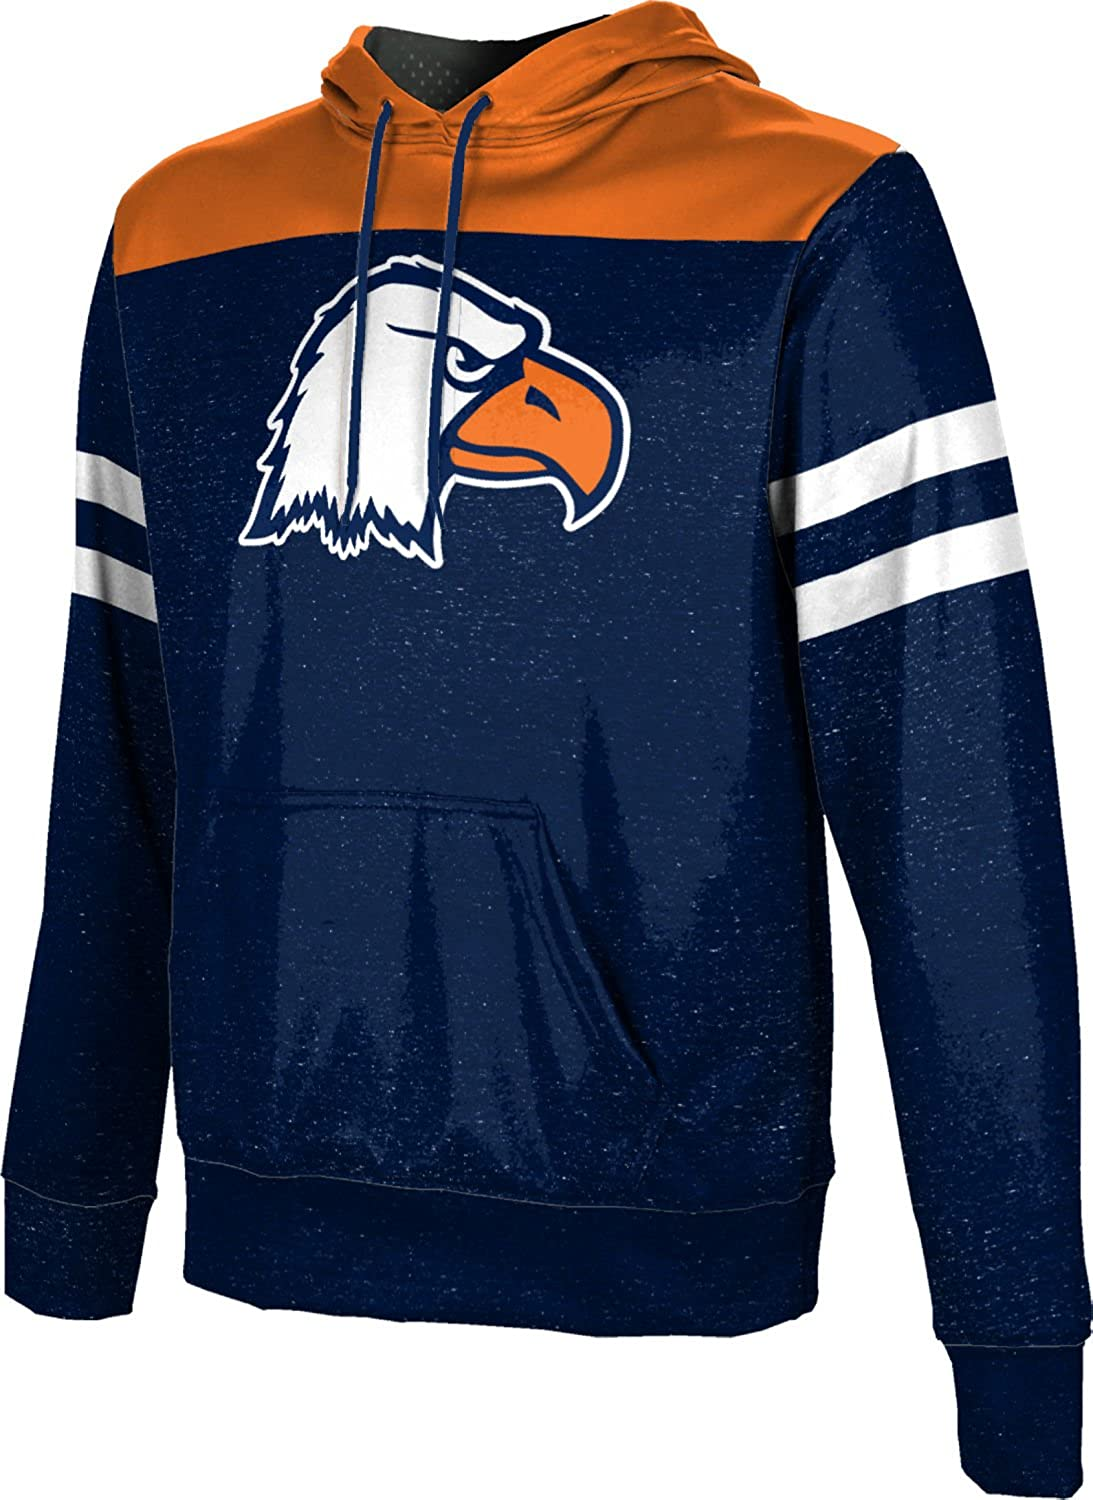 Carson-Newman University College Men's 大人気! Pullover S Hoodie School ギフト プレゼント ご褒美